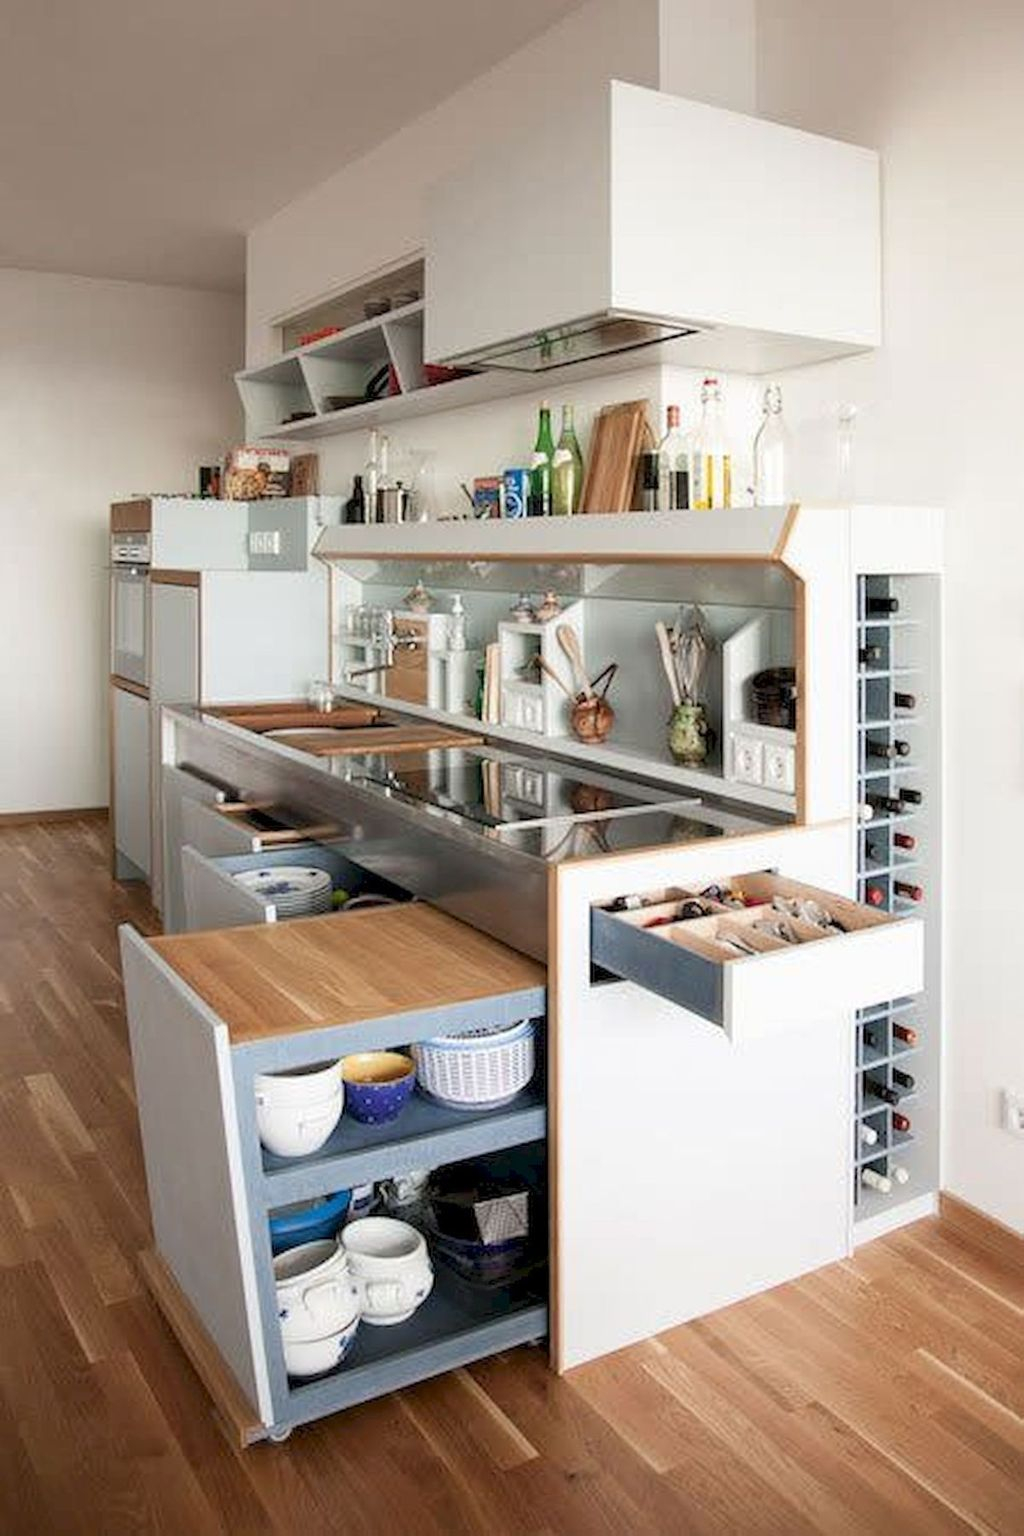 Cool Diy Kitchen Design Ideas You Will Definitely Want To Keep 28